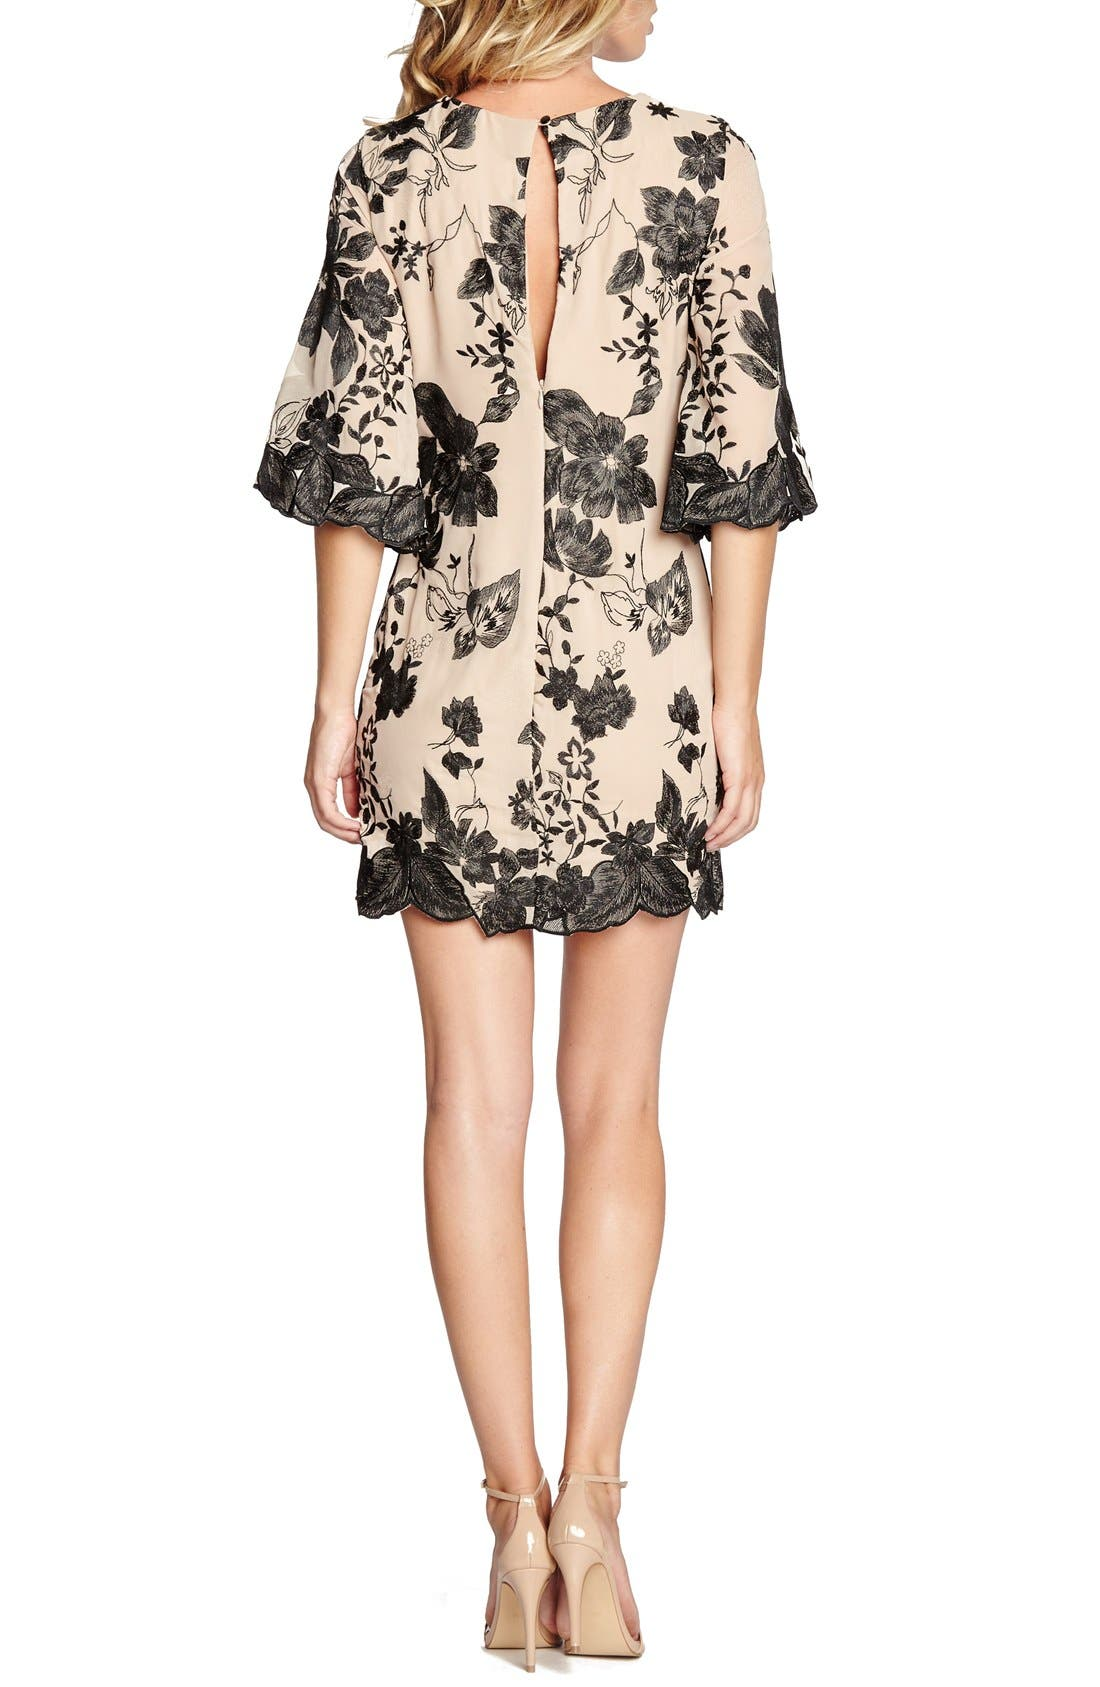 'Paige' Metallic Embroidered Chiffon Shift Dress,                             Alternate thumbnail 3, color,                             259